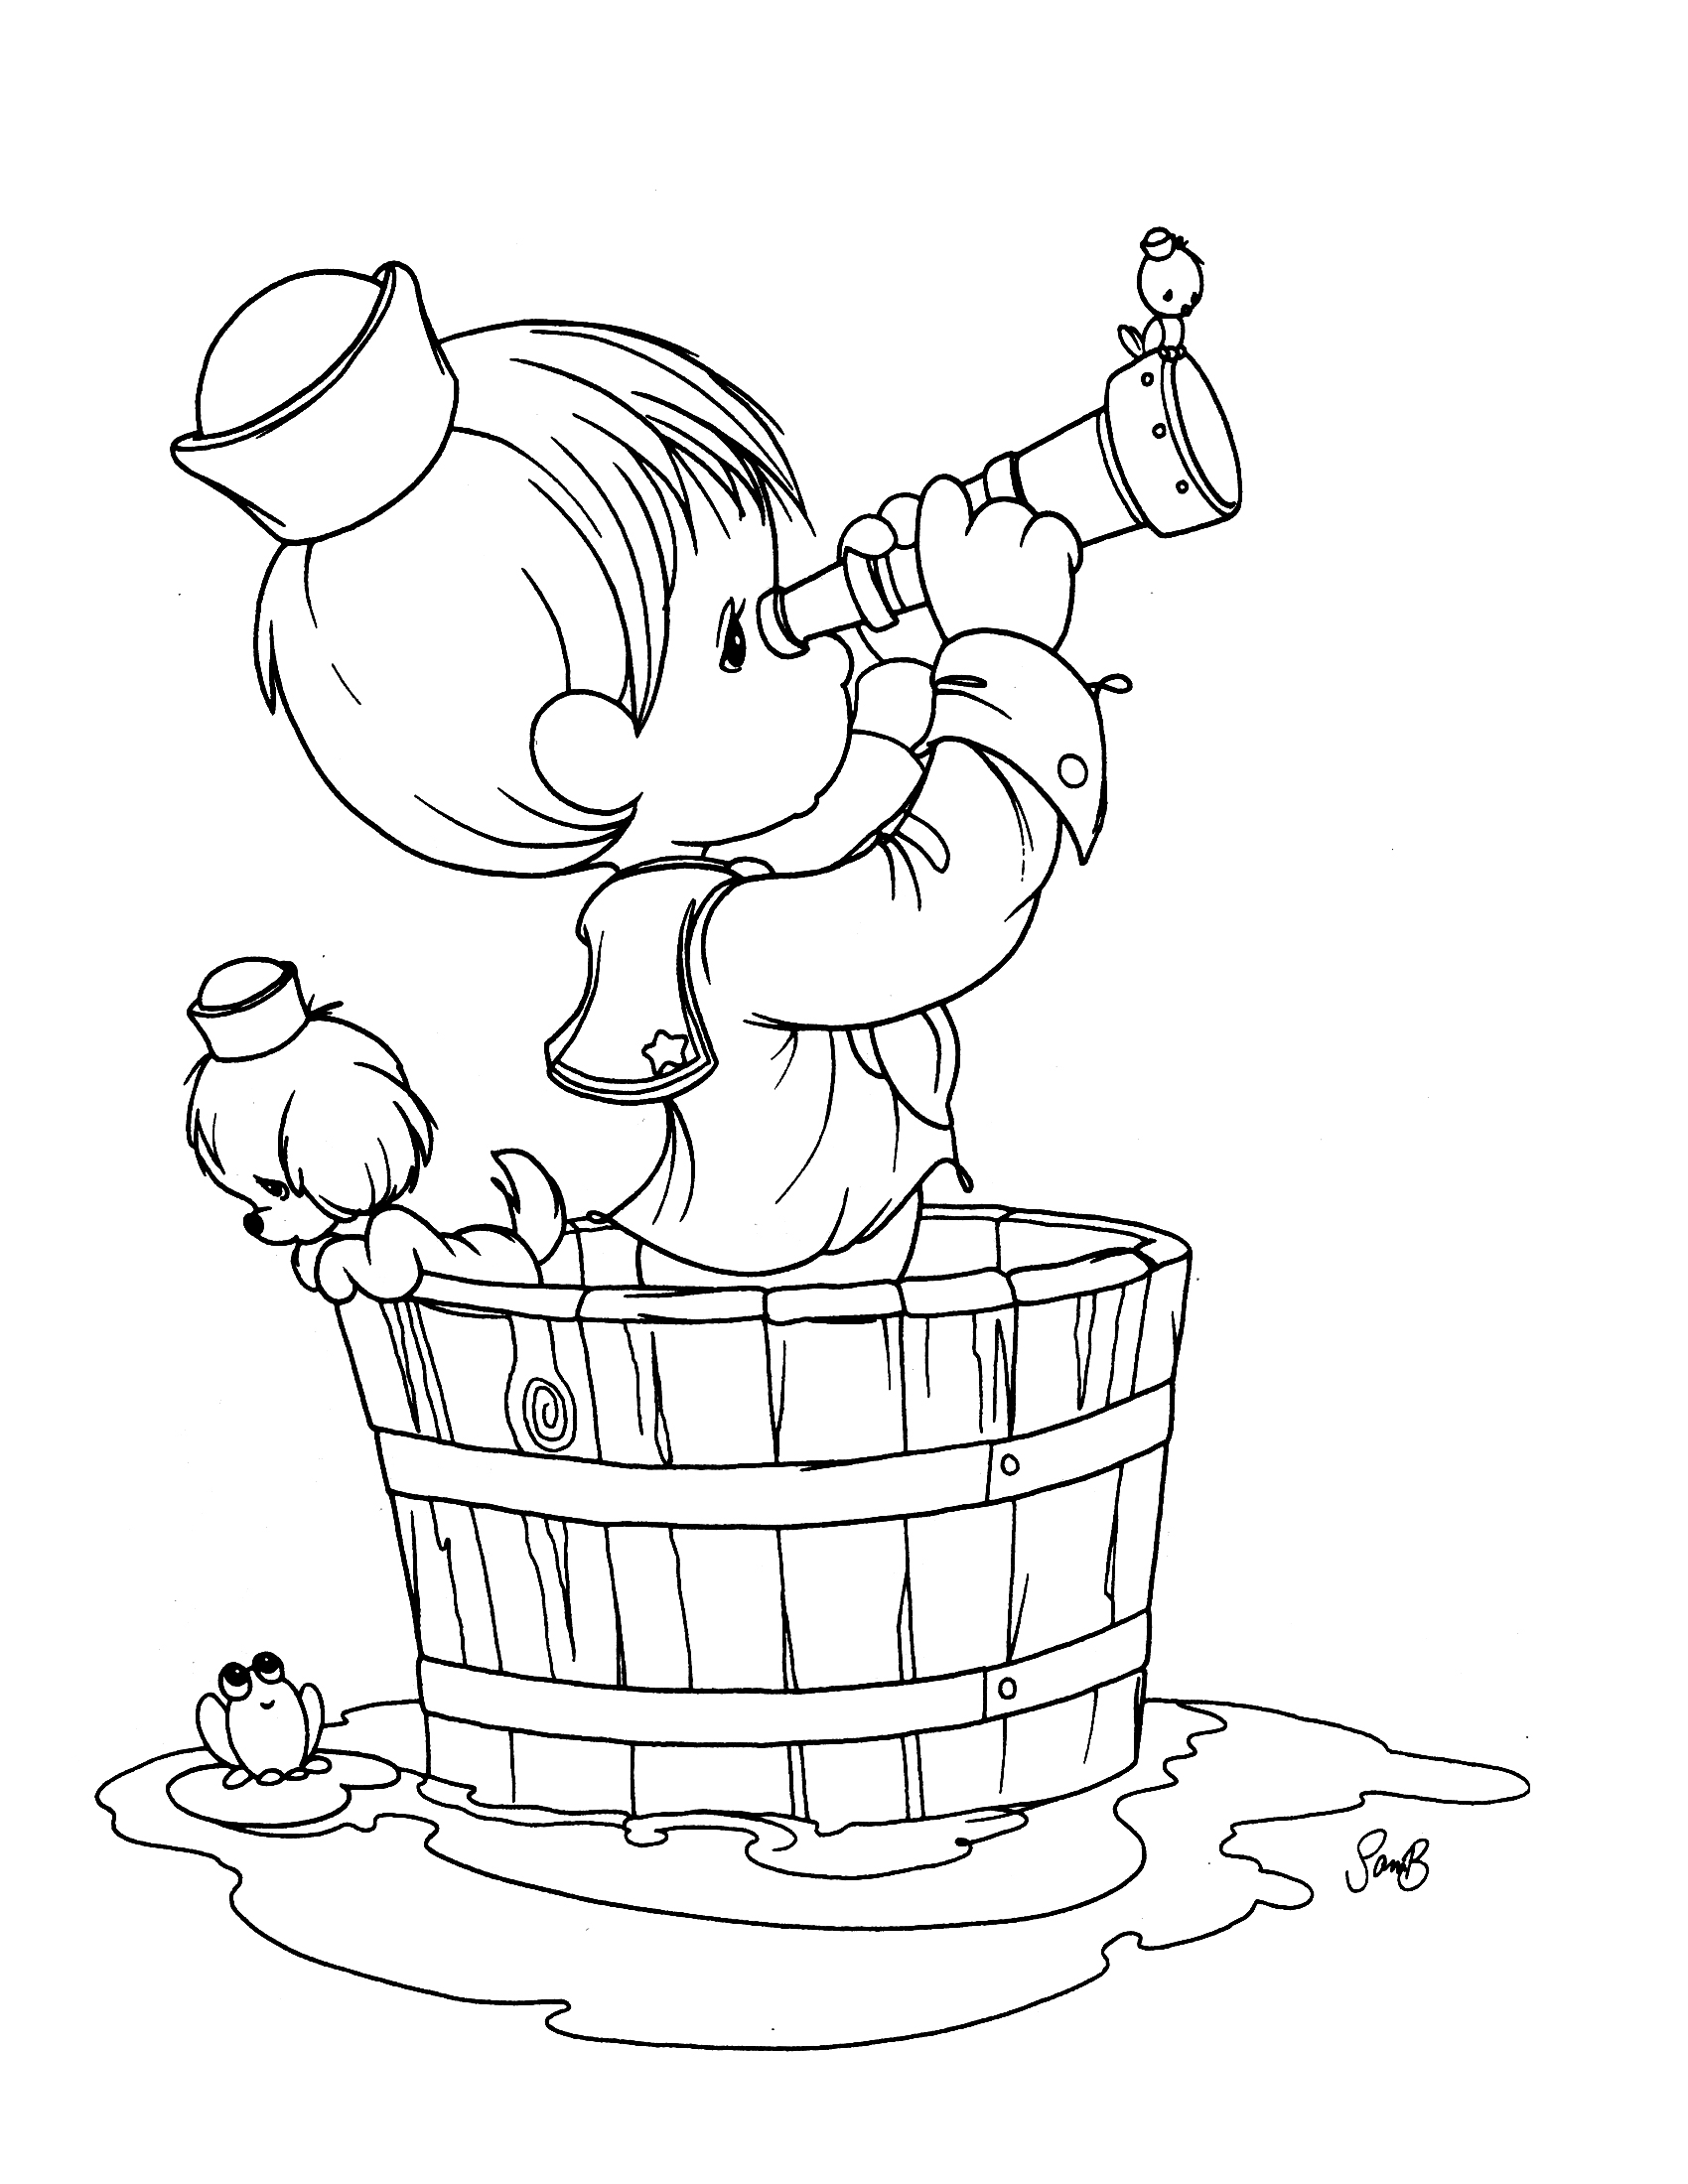 Precious Moments Boy Coloring Pages At Getdrawings Com